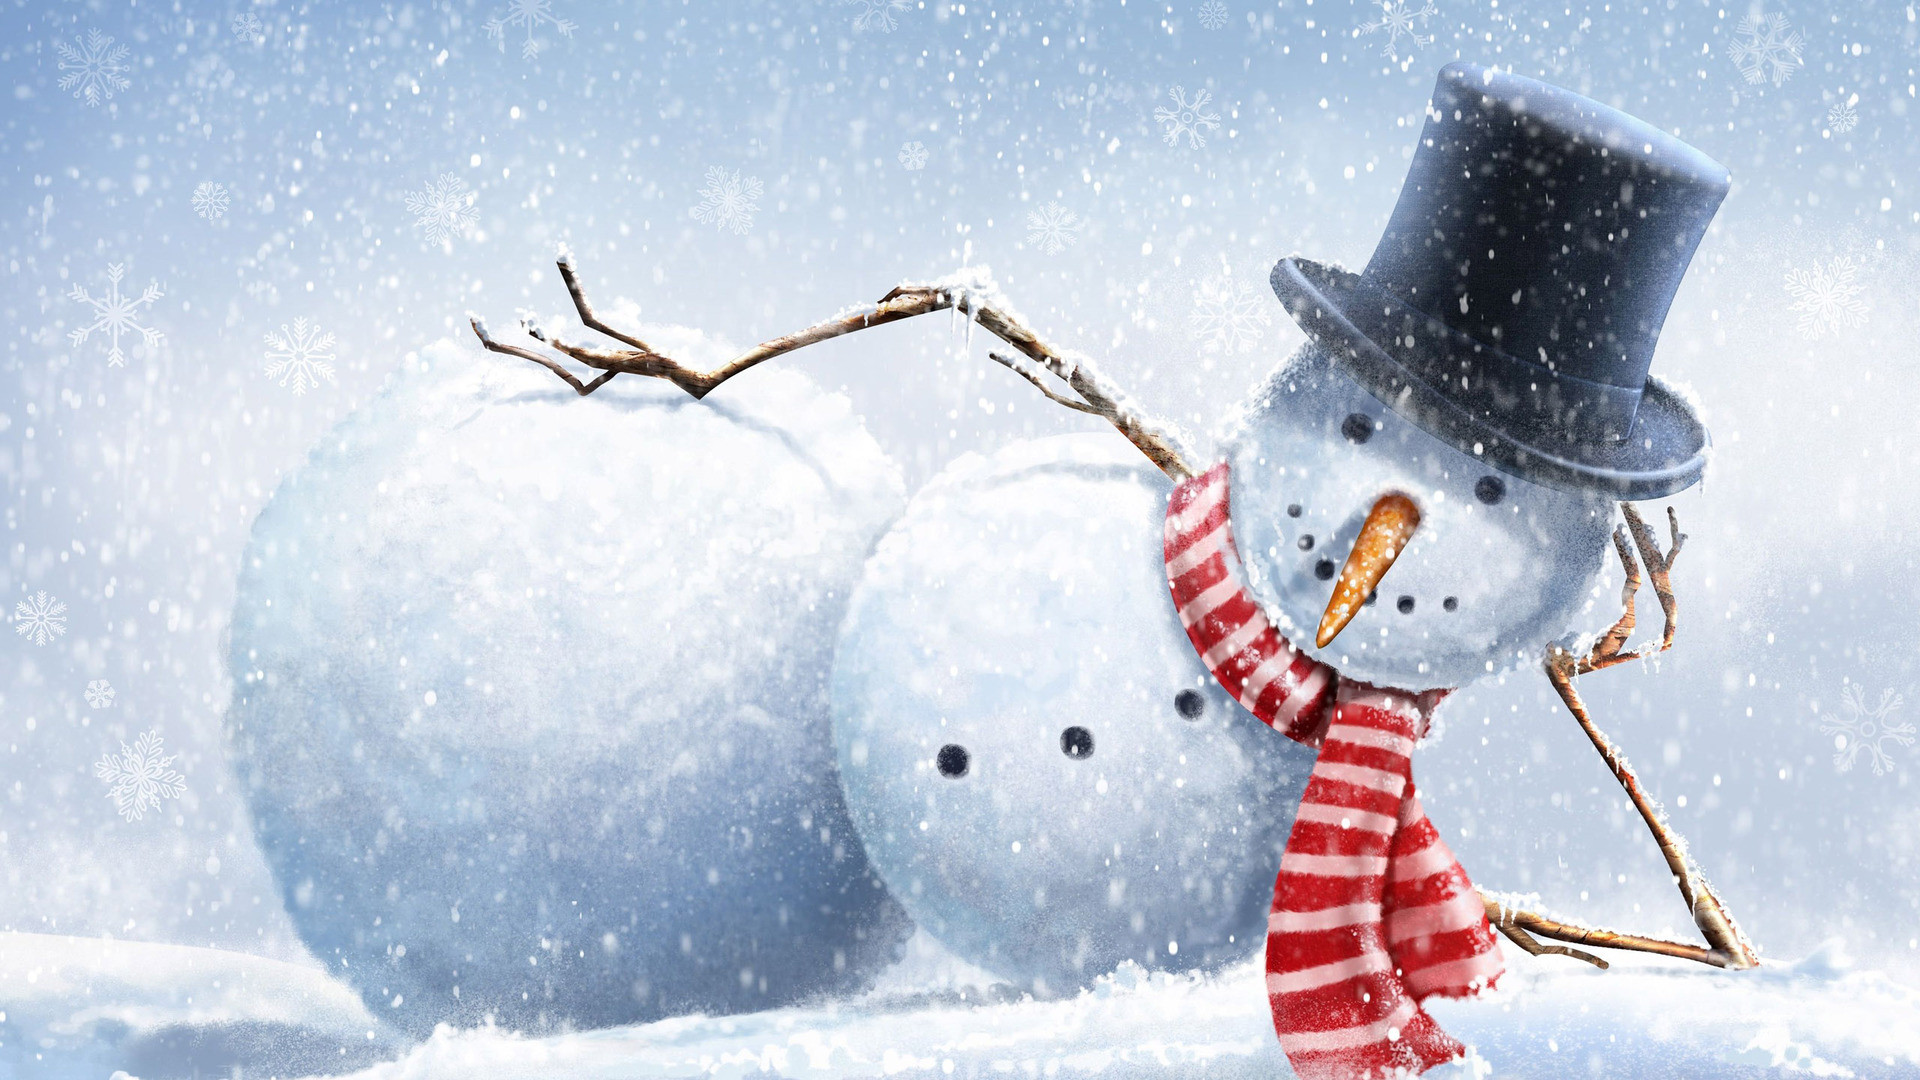 cute country snowman wallpaper - photo #13